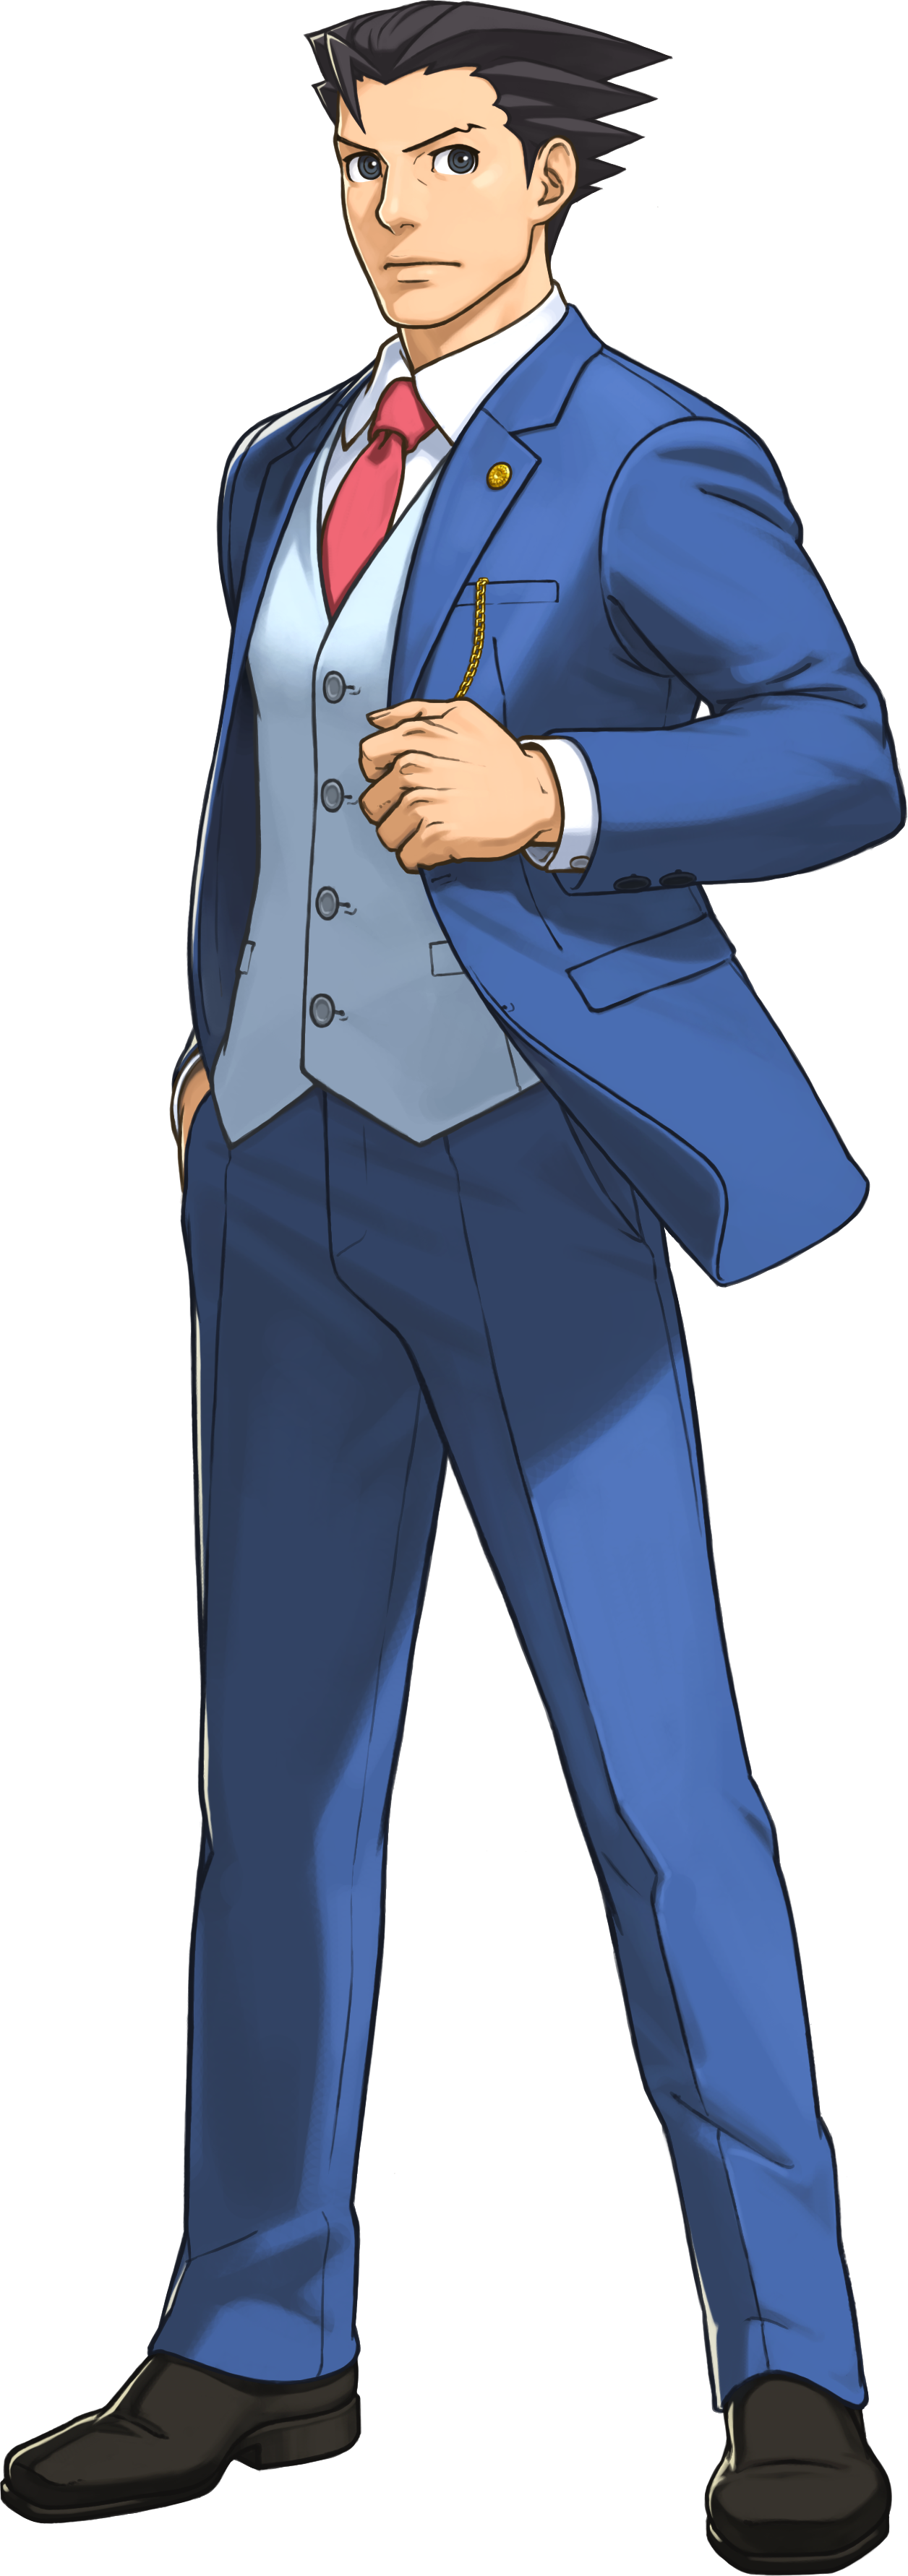 Ace Attorney Transparent - Ace Attorney PNG